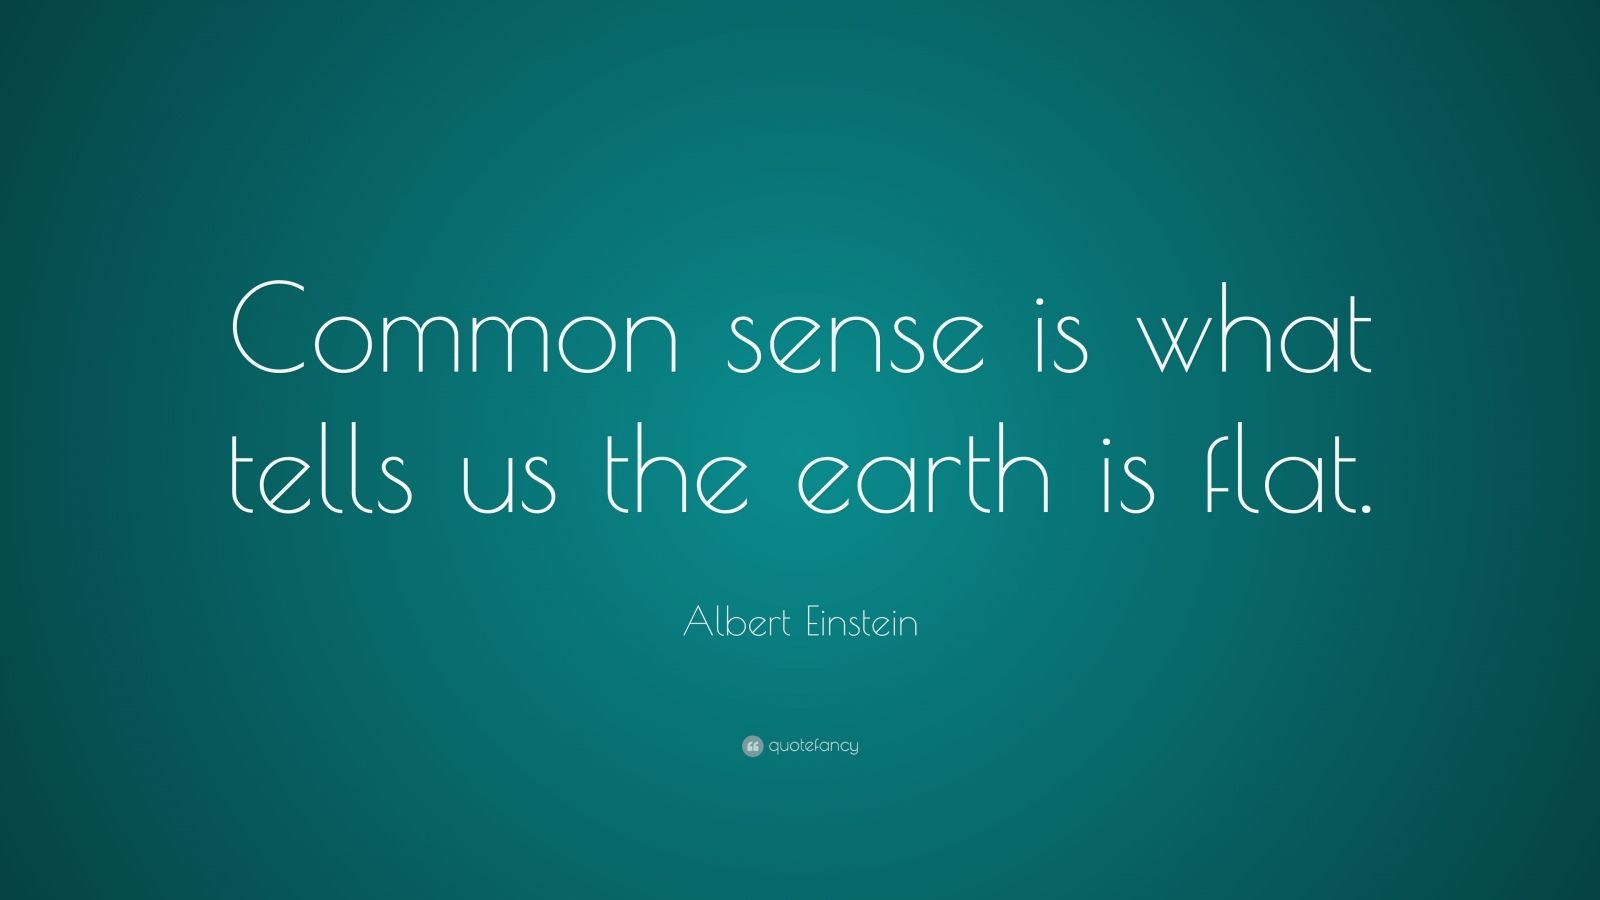 Persistence Quotes Wallpapers Albert Einstein Quote Common Sense Is What Tells Us The